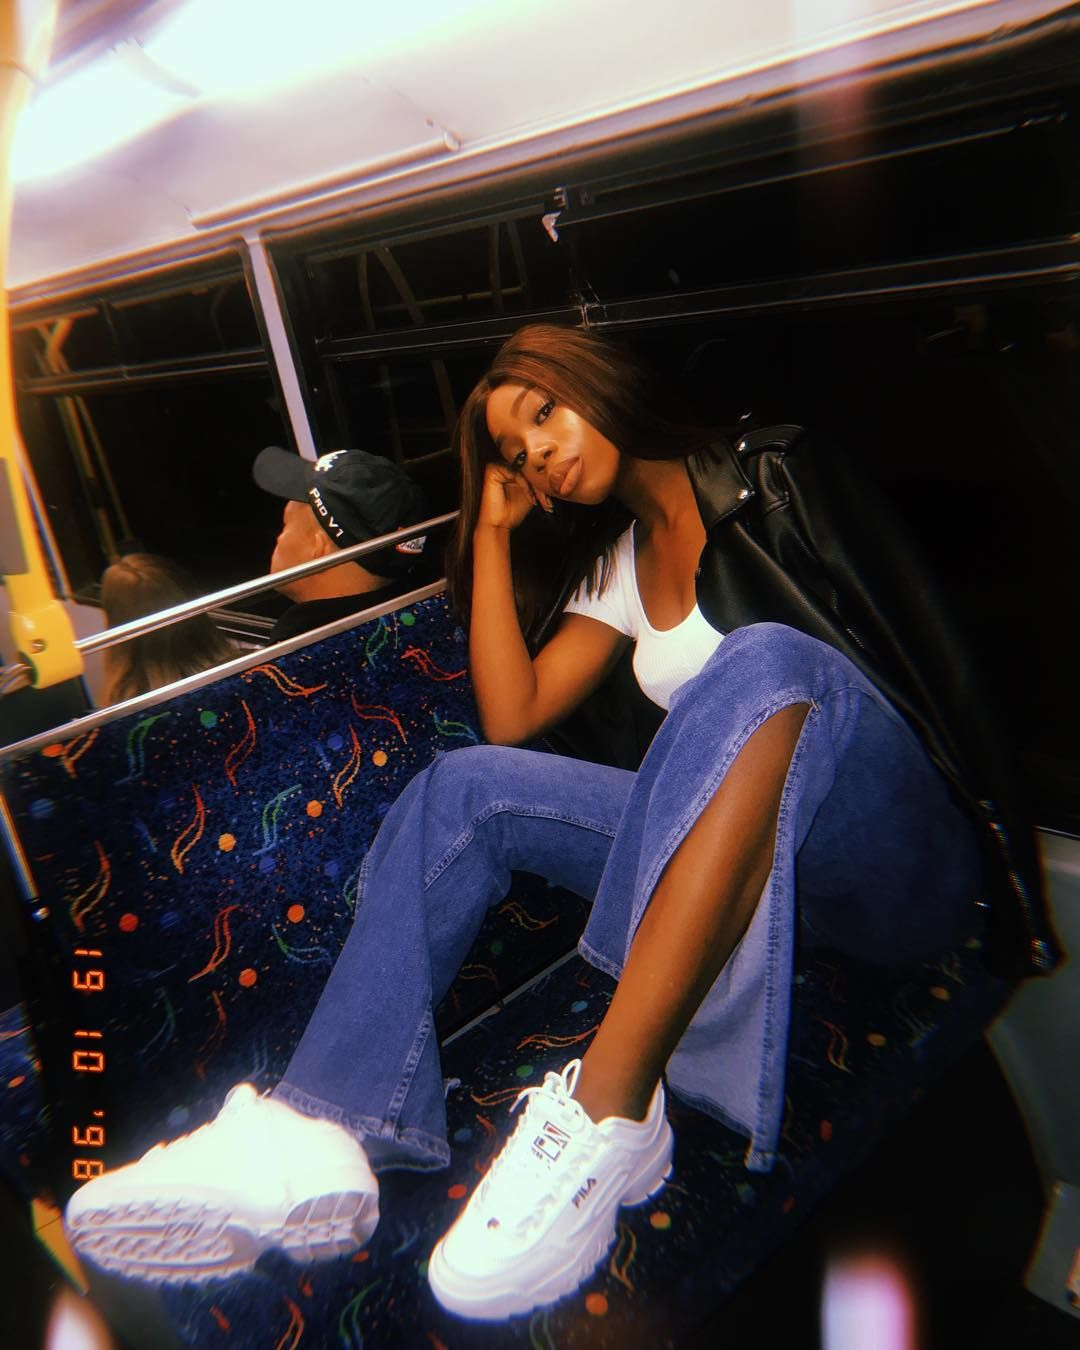 Image may contain: Love Island 2019 Instagrams, Yewande Biala, Instagram, Love island, 2019, contestant, Islander, cast list, handle, Insta, social media, followers, Pants, Night Life, Human, Person, Shoe, Footwear, Clothing, Apparel